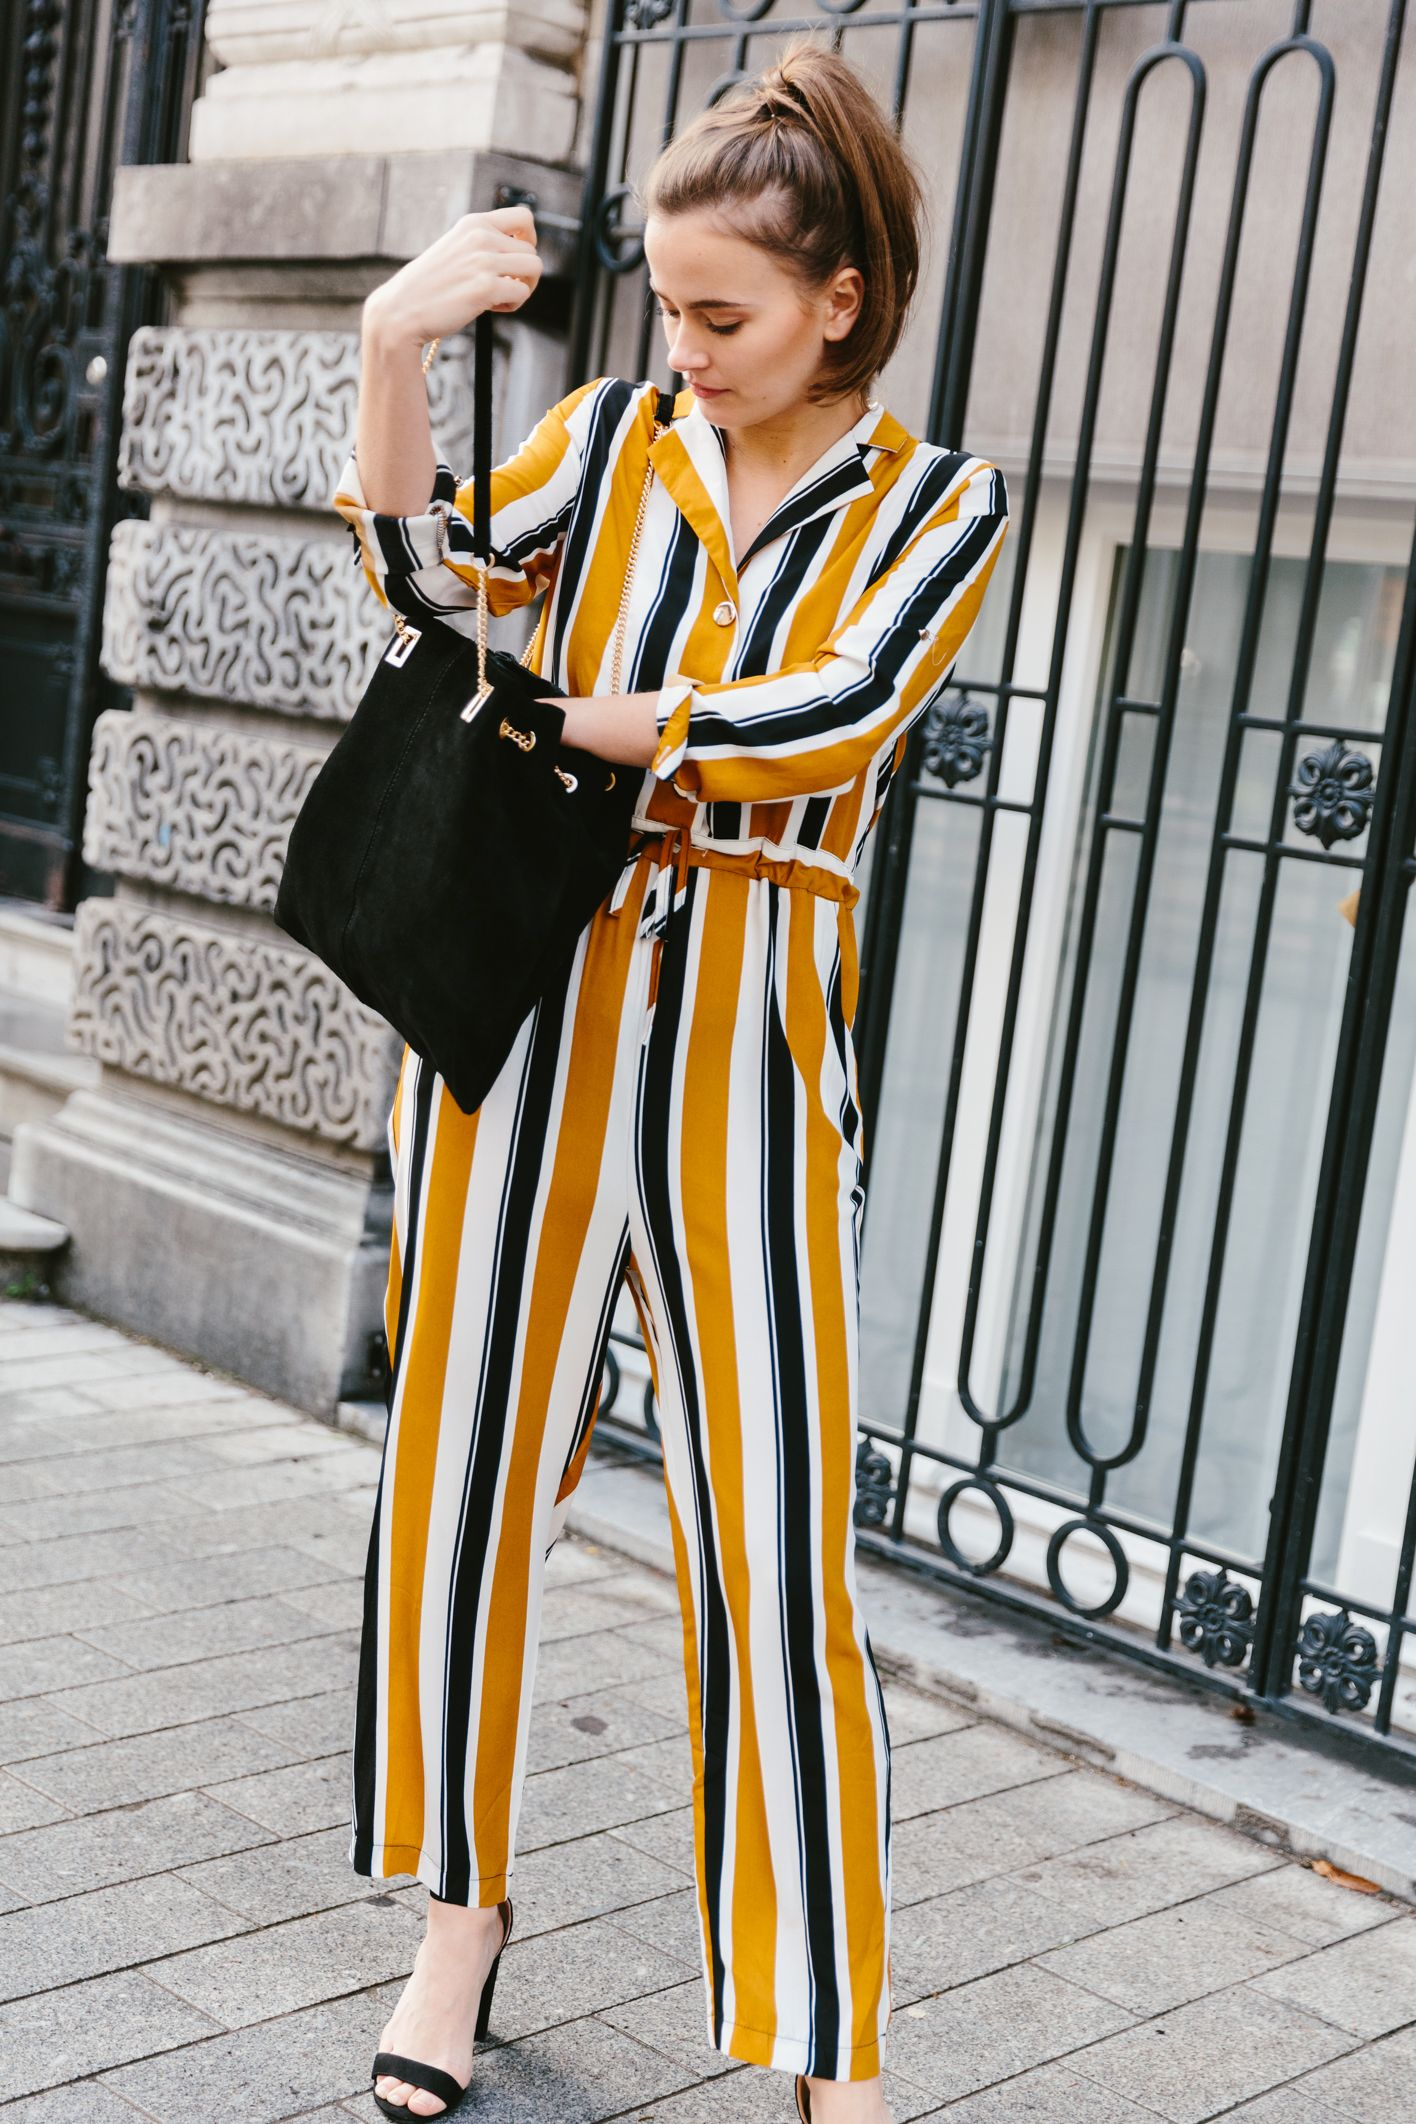 TRENDSof the season: the culotte jumpsuit. #culottes #jumpsuit #stripes #streetstyle #fashiontrends